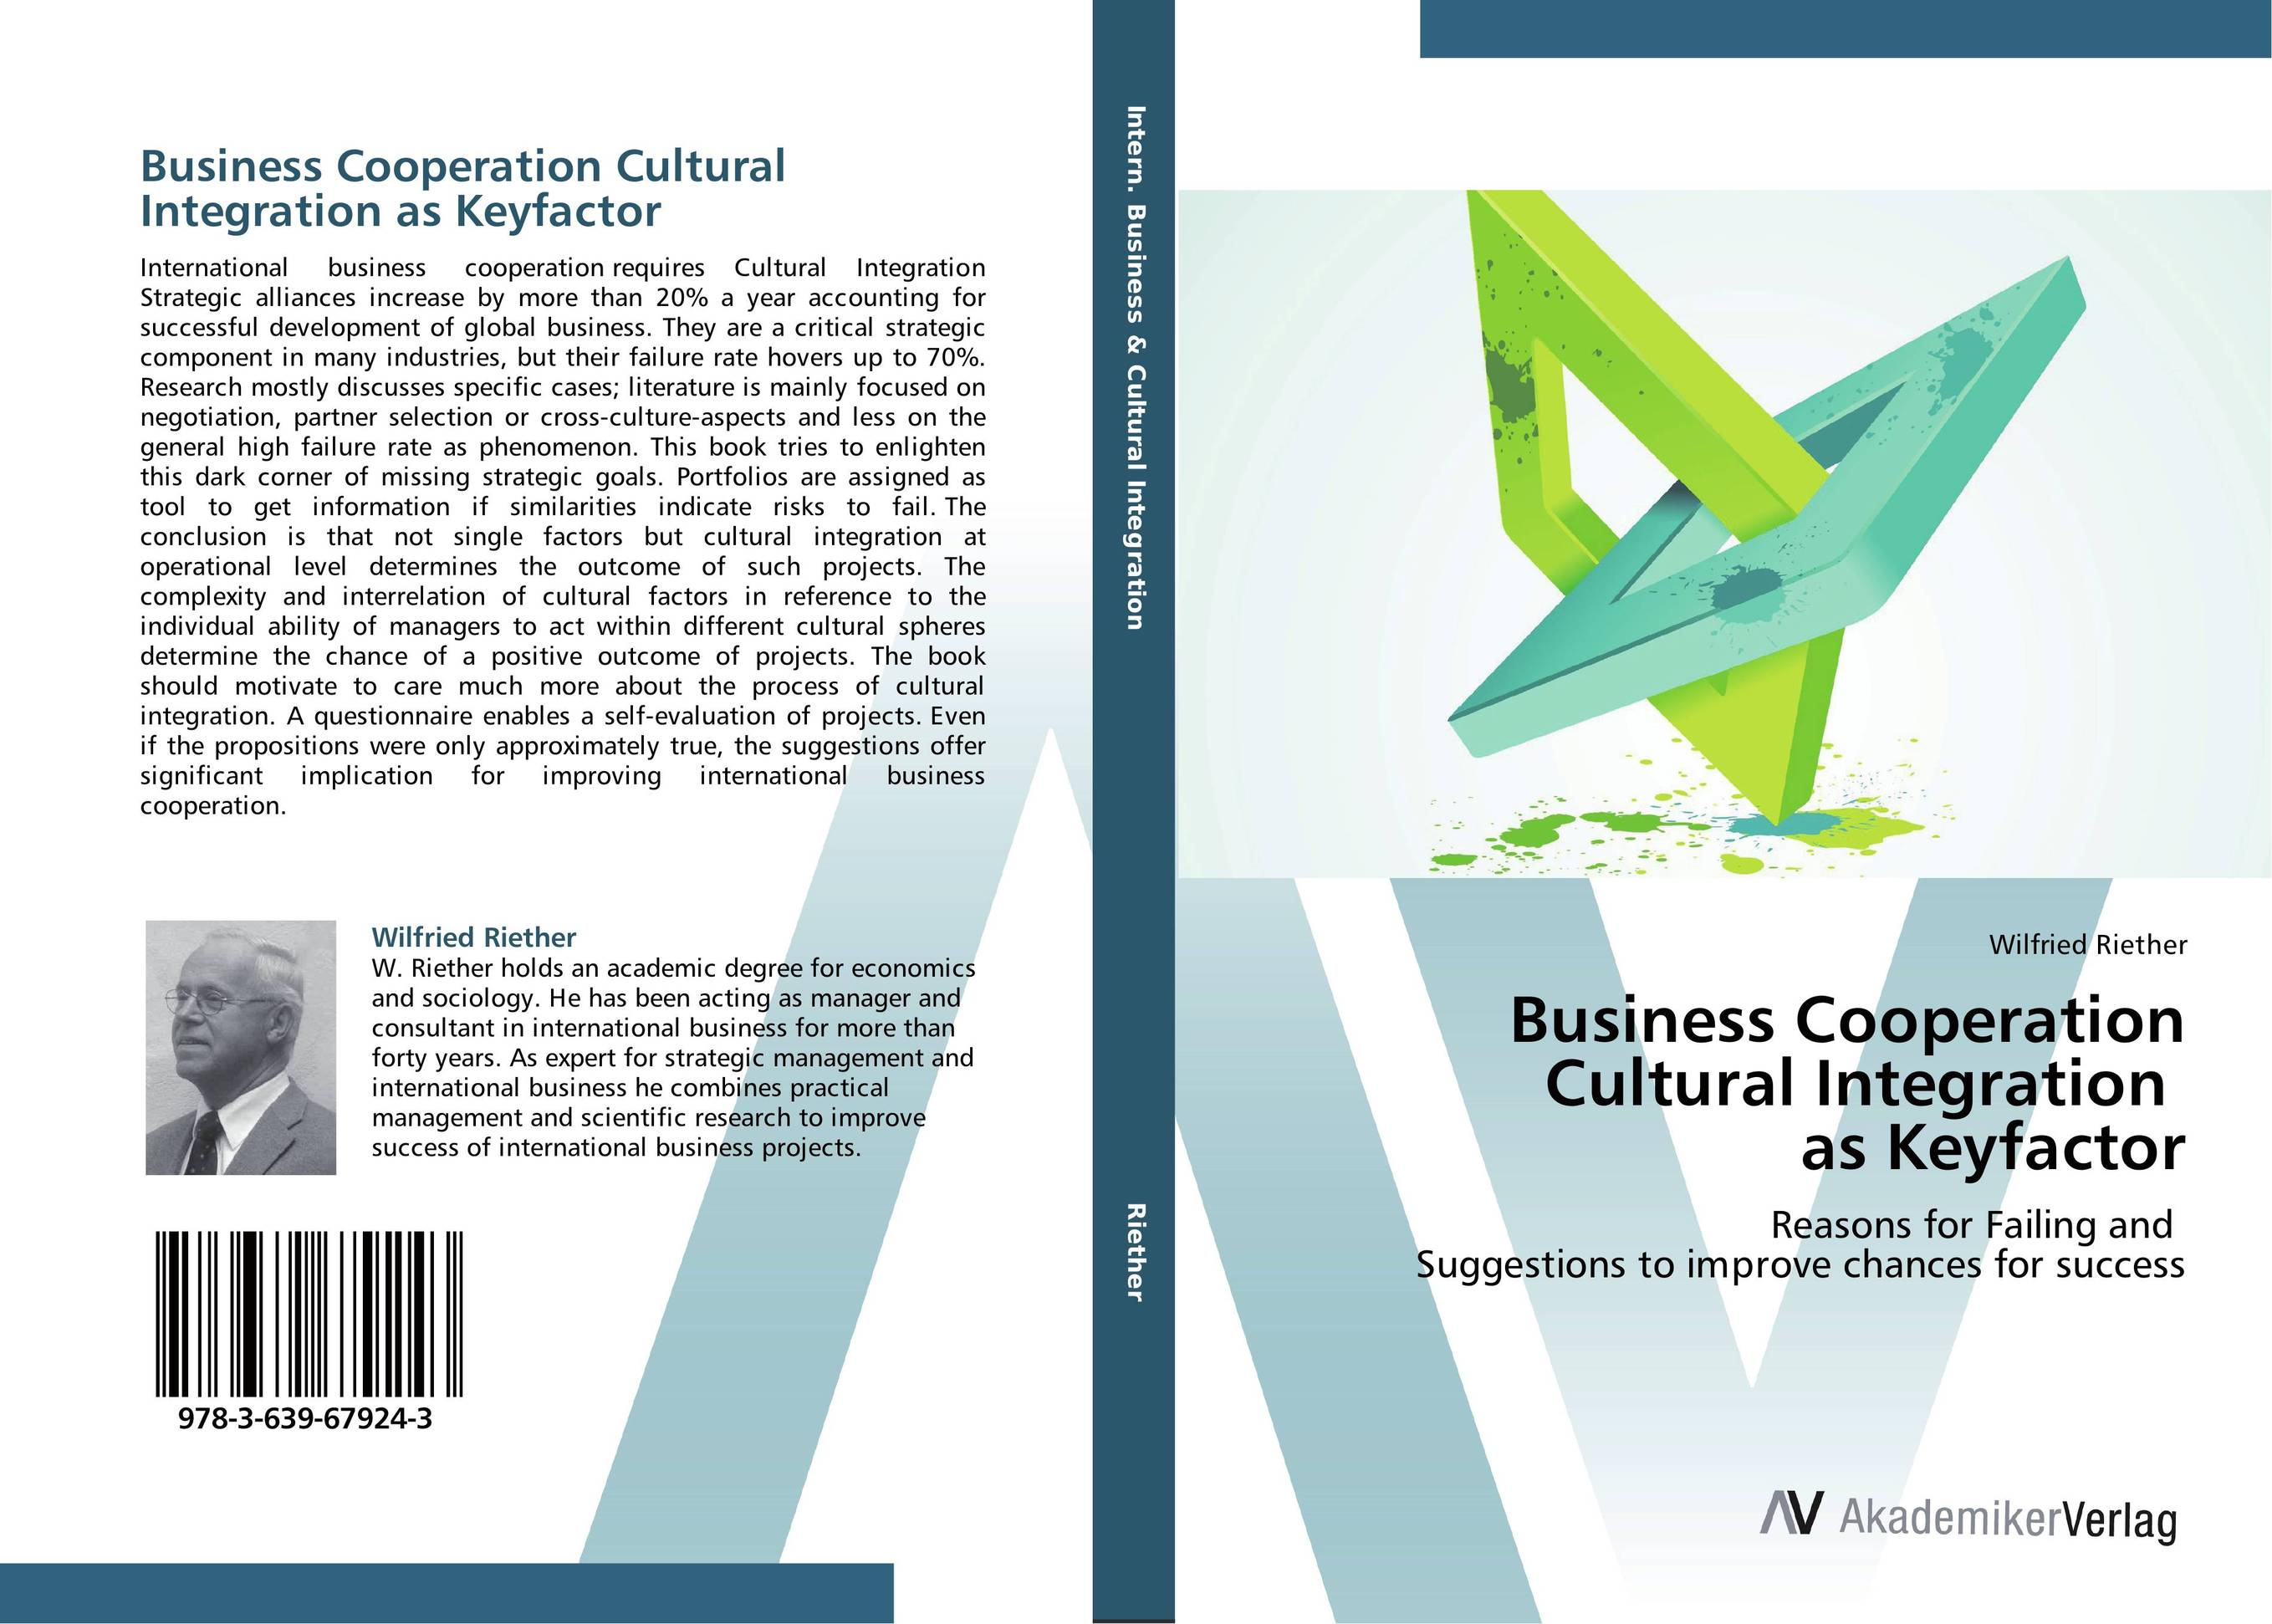 Business Cooperation Cultural Integration as Keyfactor